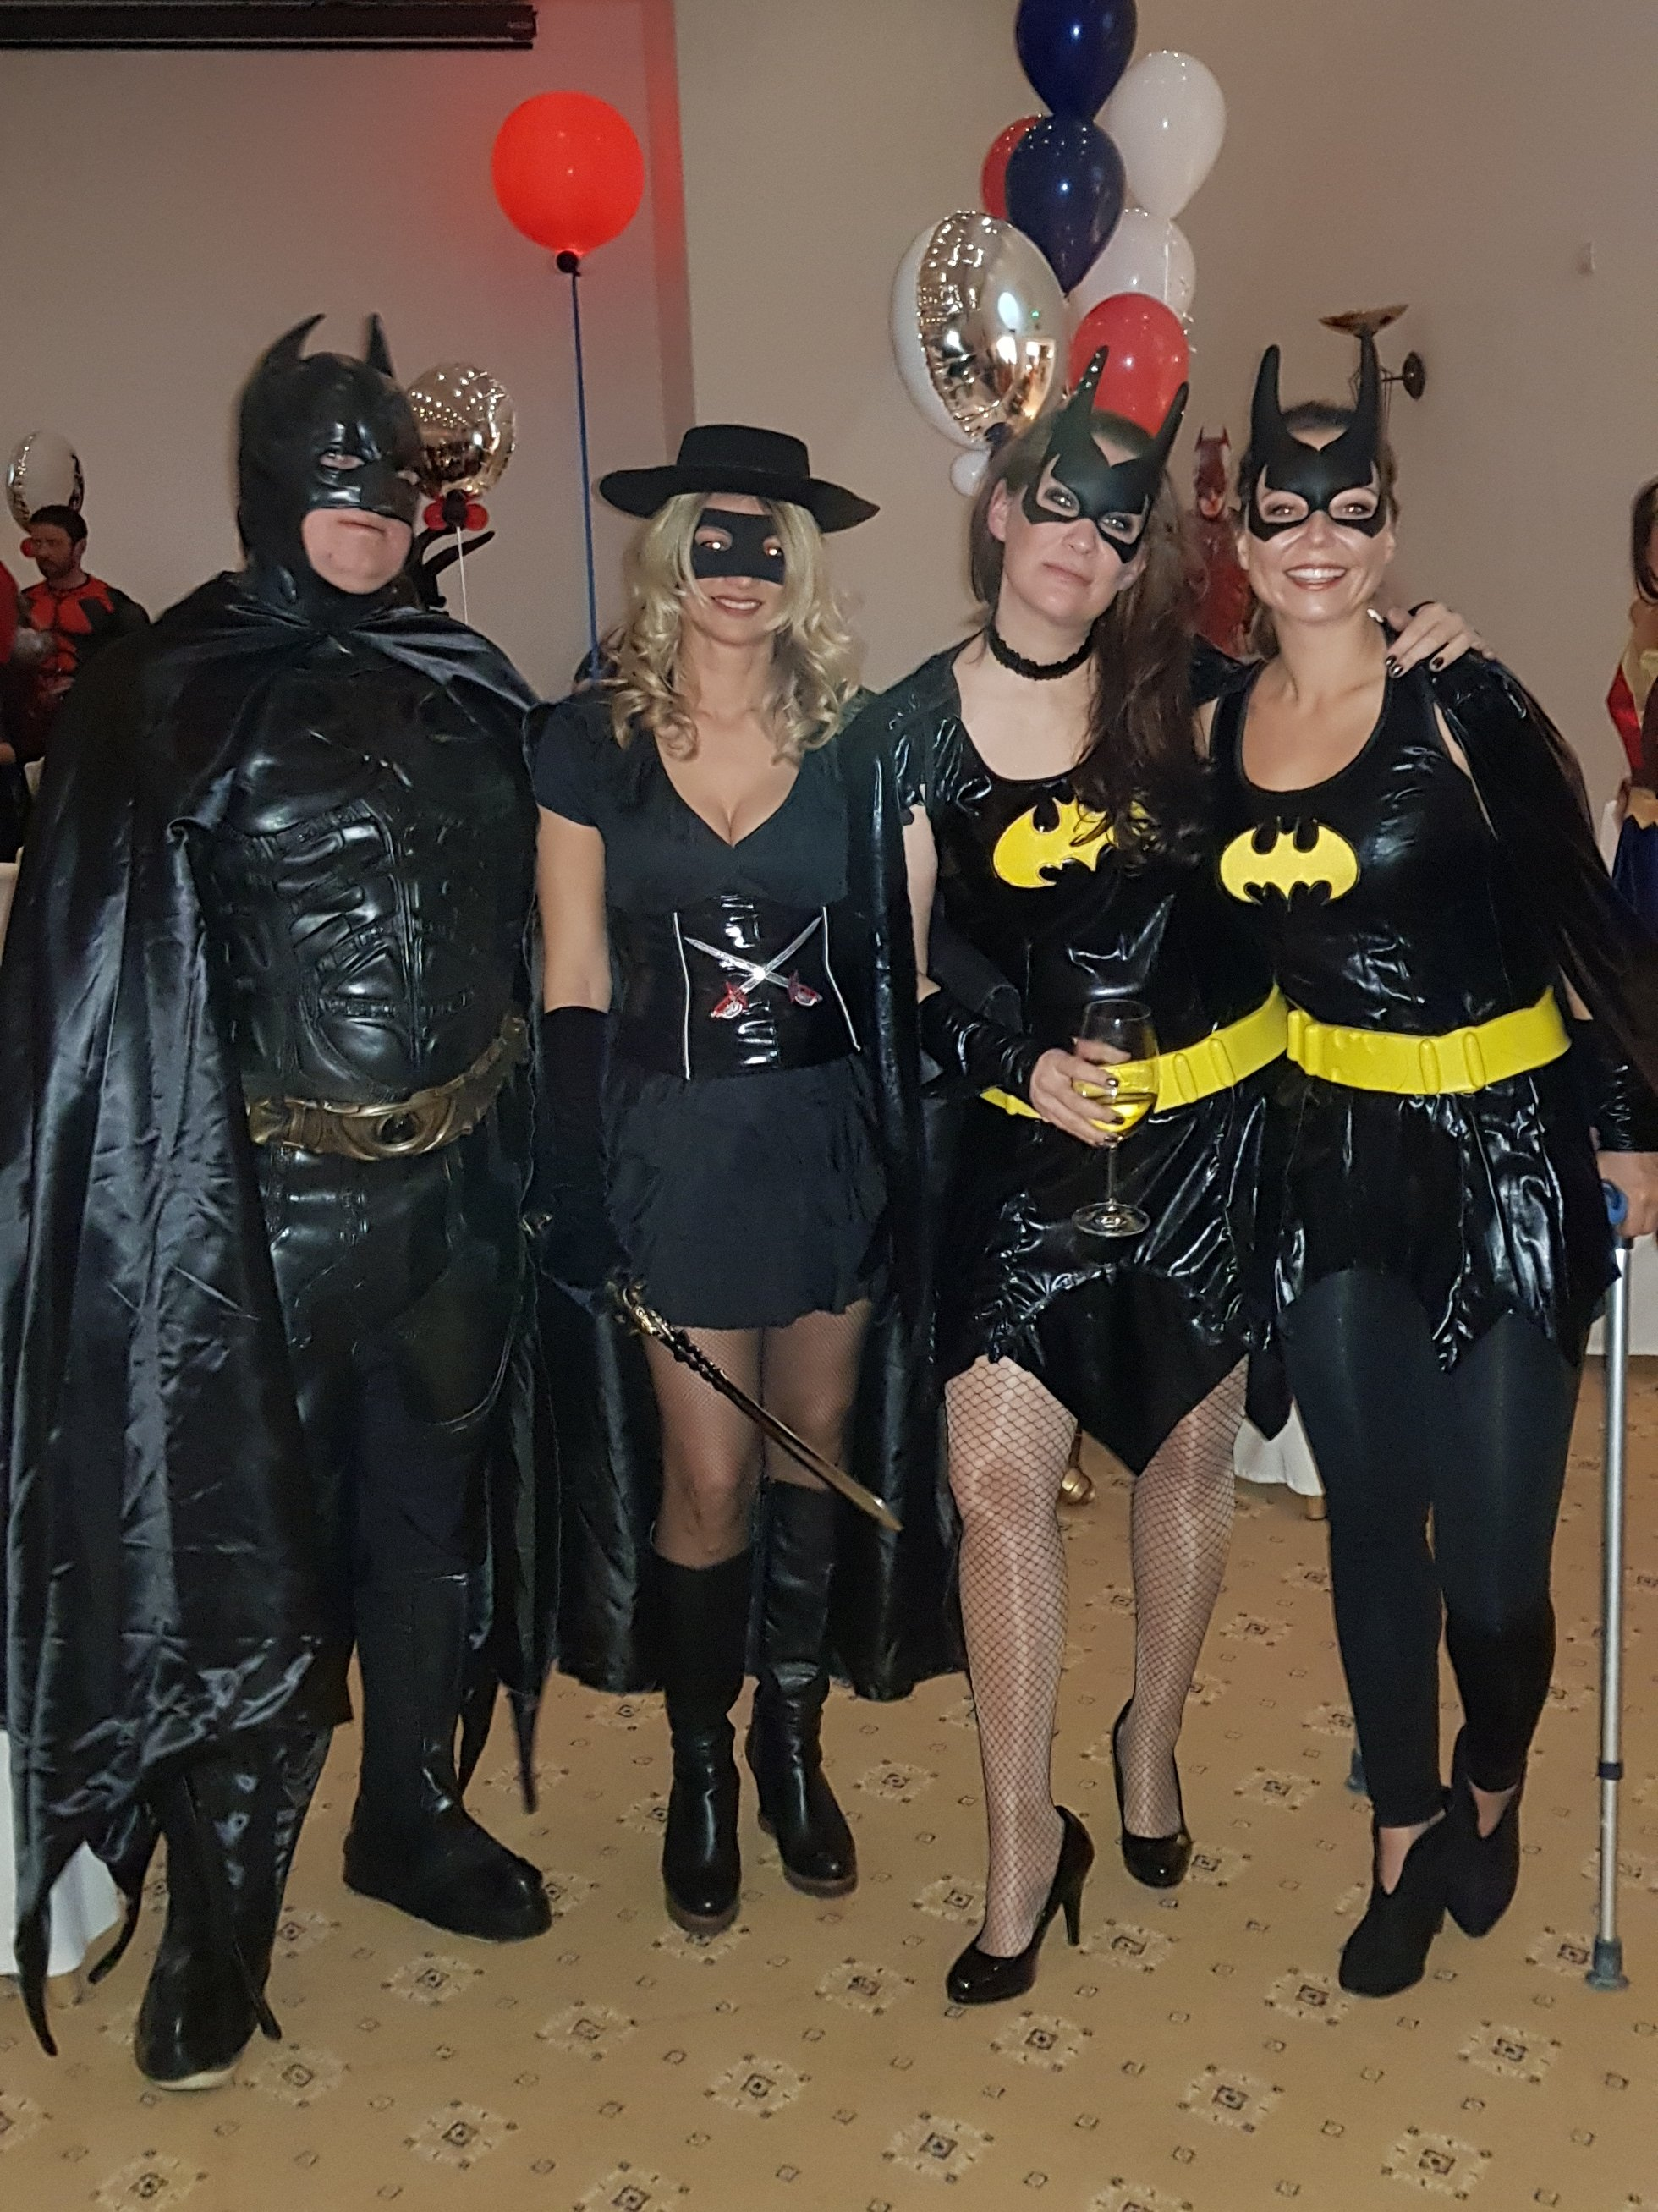 Birthday party guests dressed as Batman and batwoman